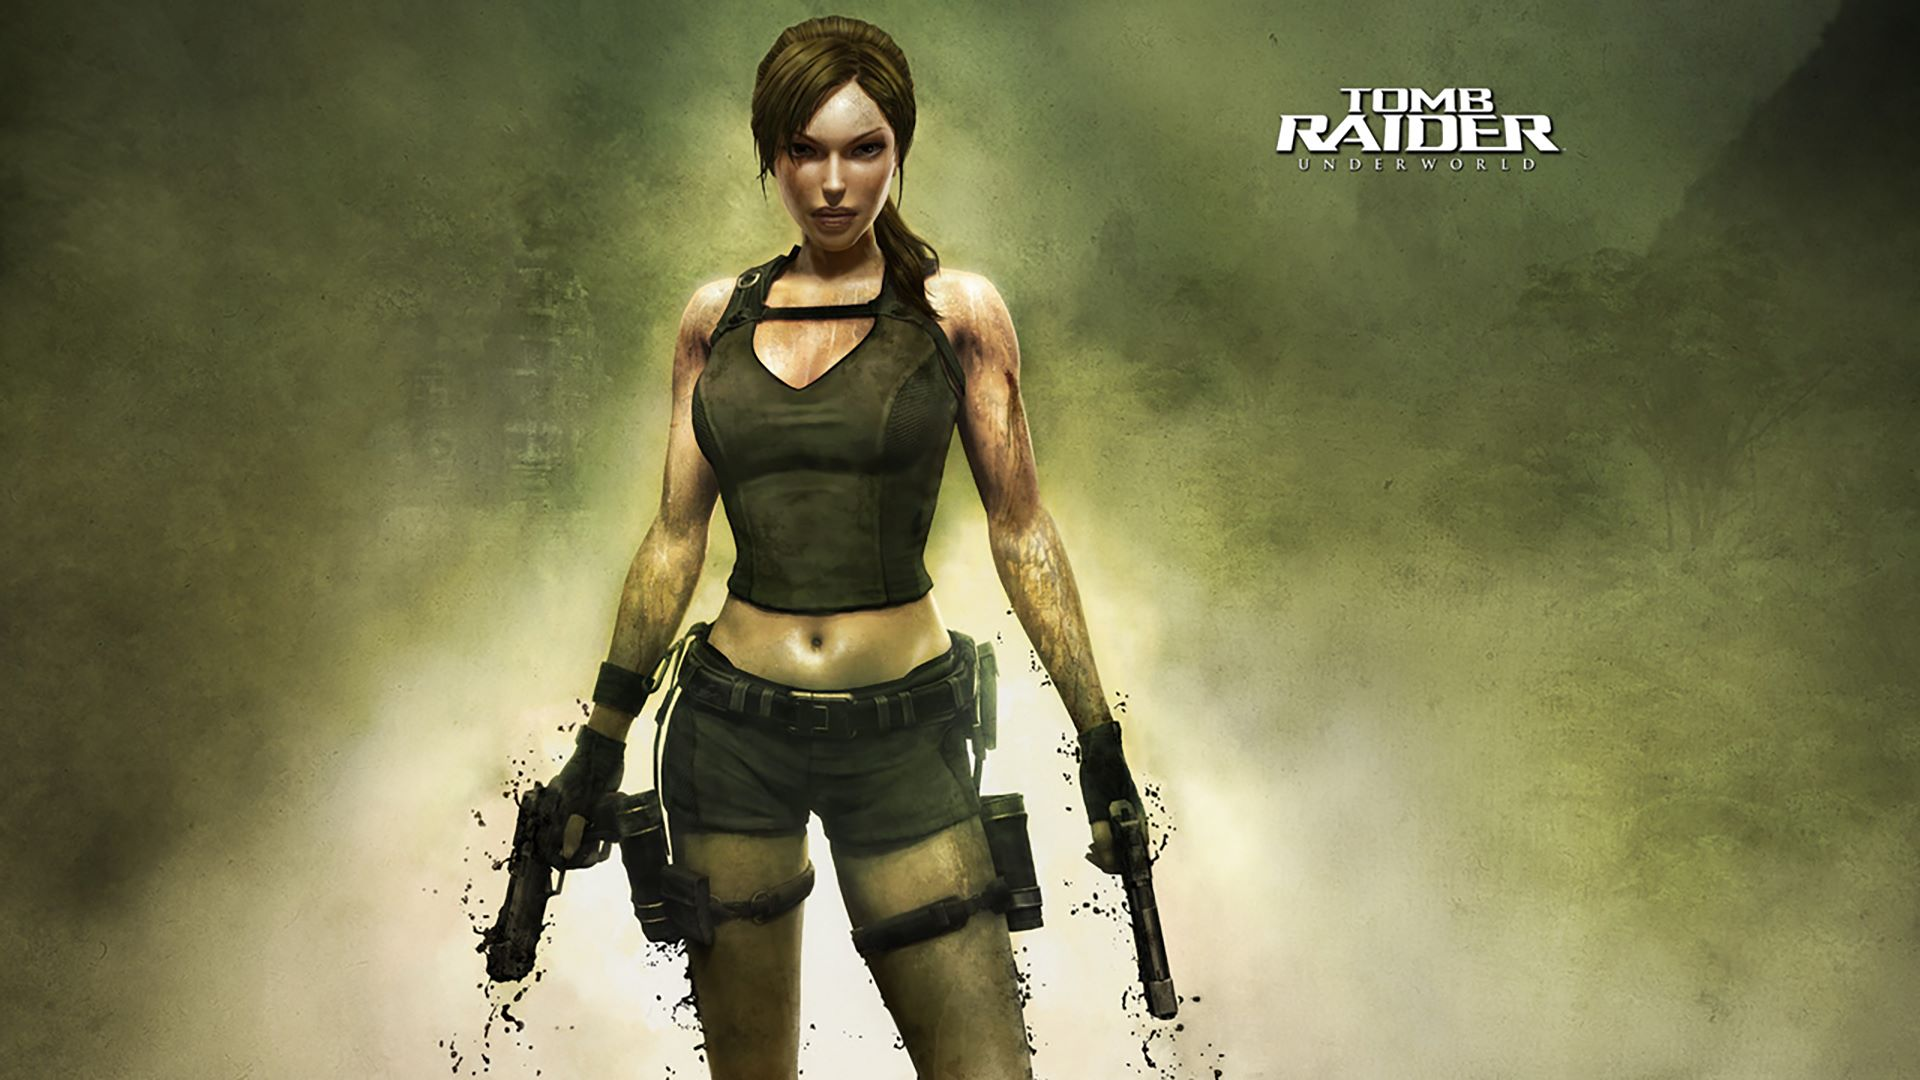 lara croft tomb raider game free download for windows 7